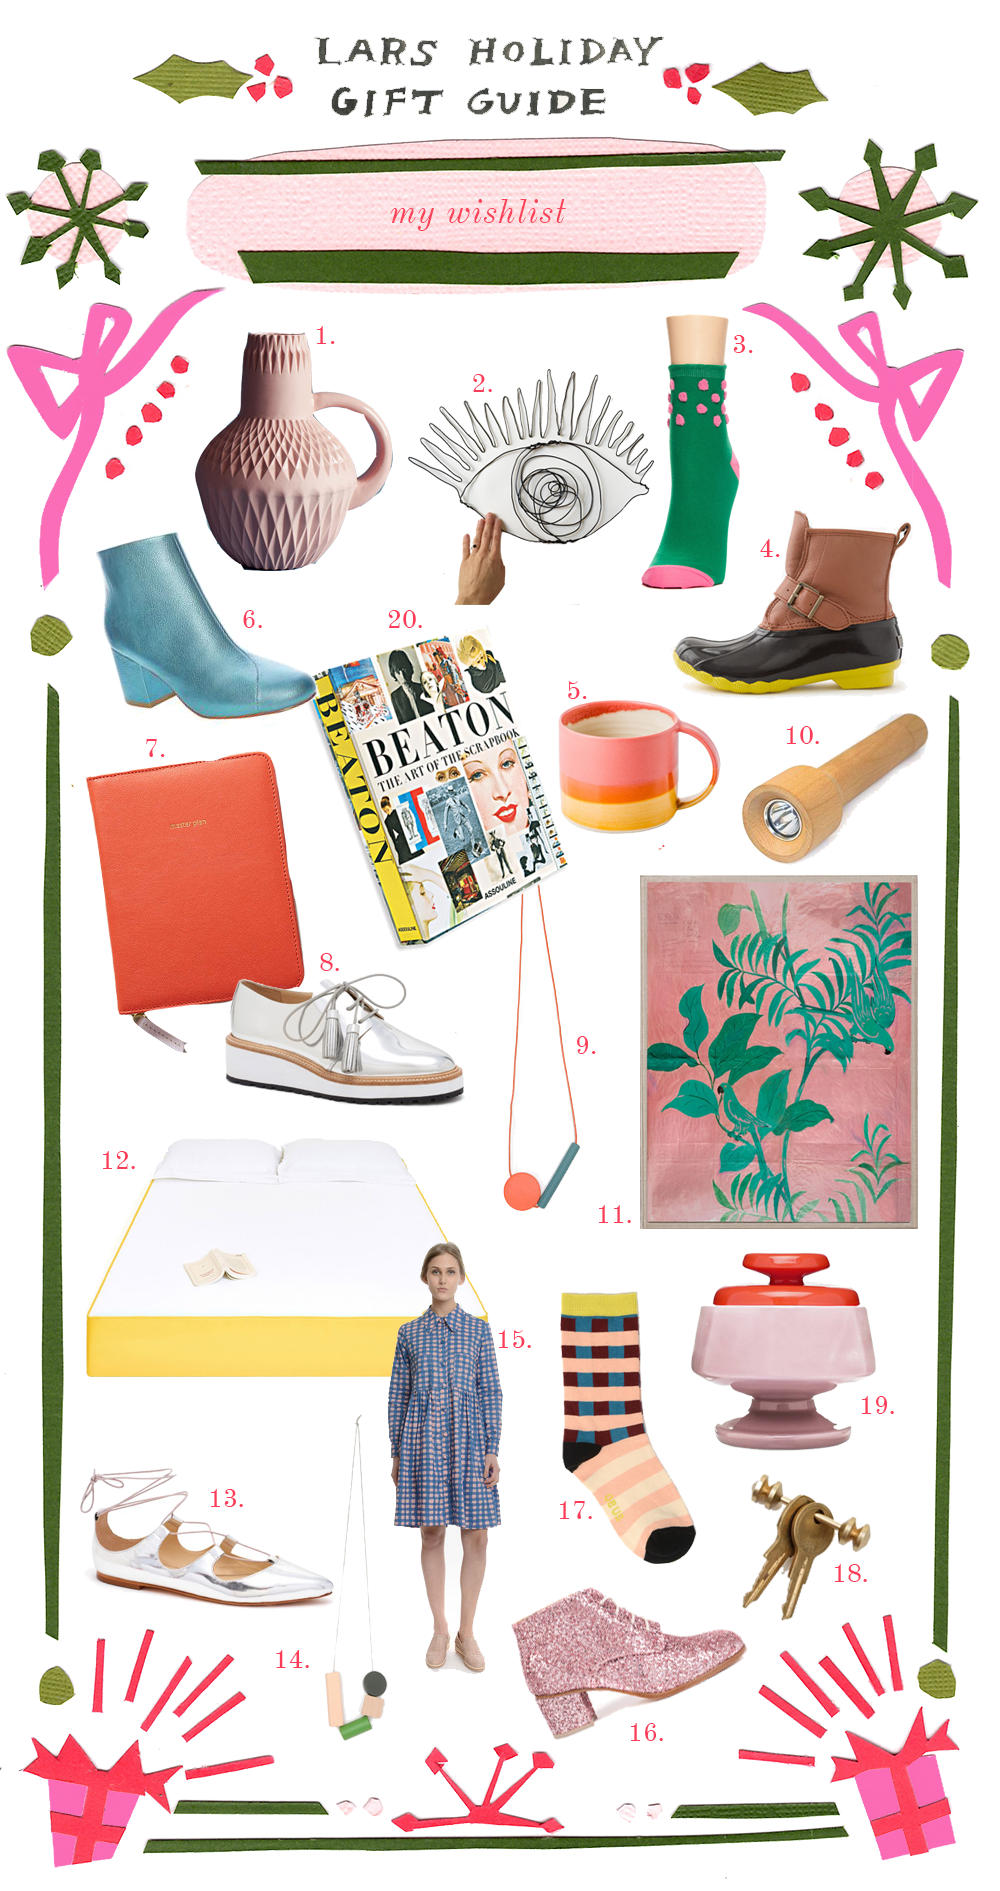 Holiday gift guide: my wishlist